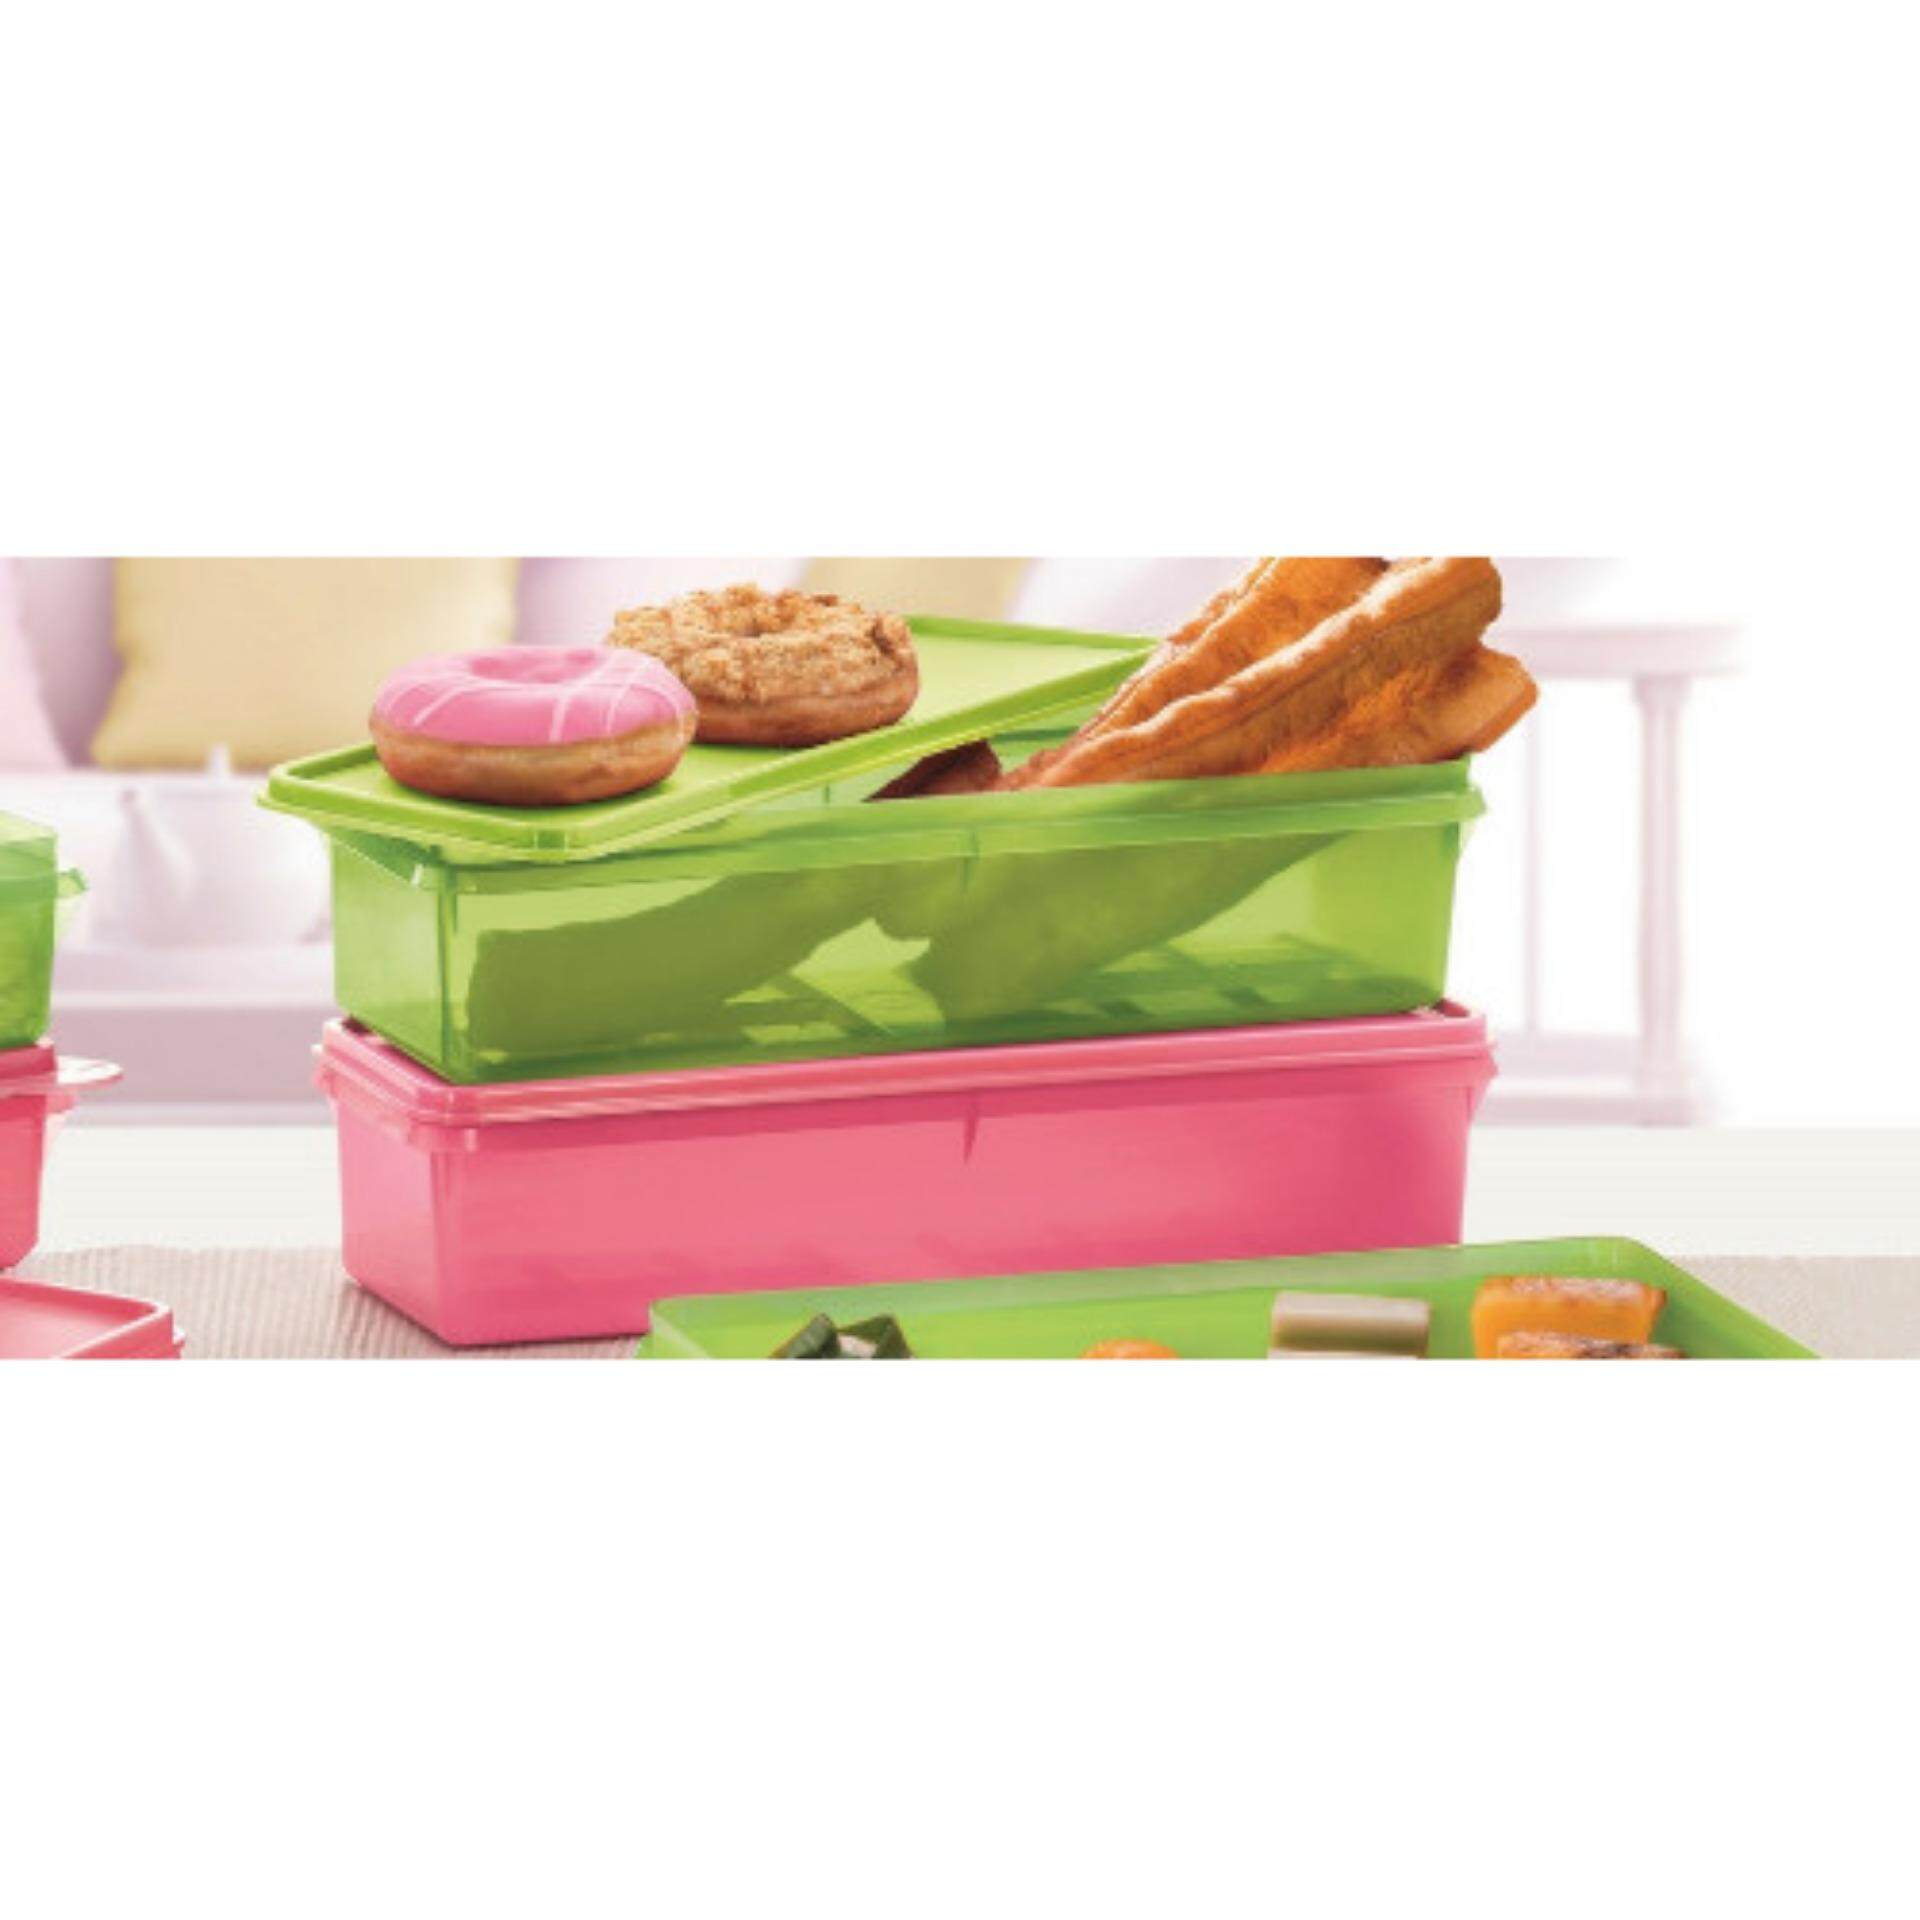 Tupperware Thin Stor (1)pc 1.7L Only - Random Color Send